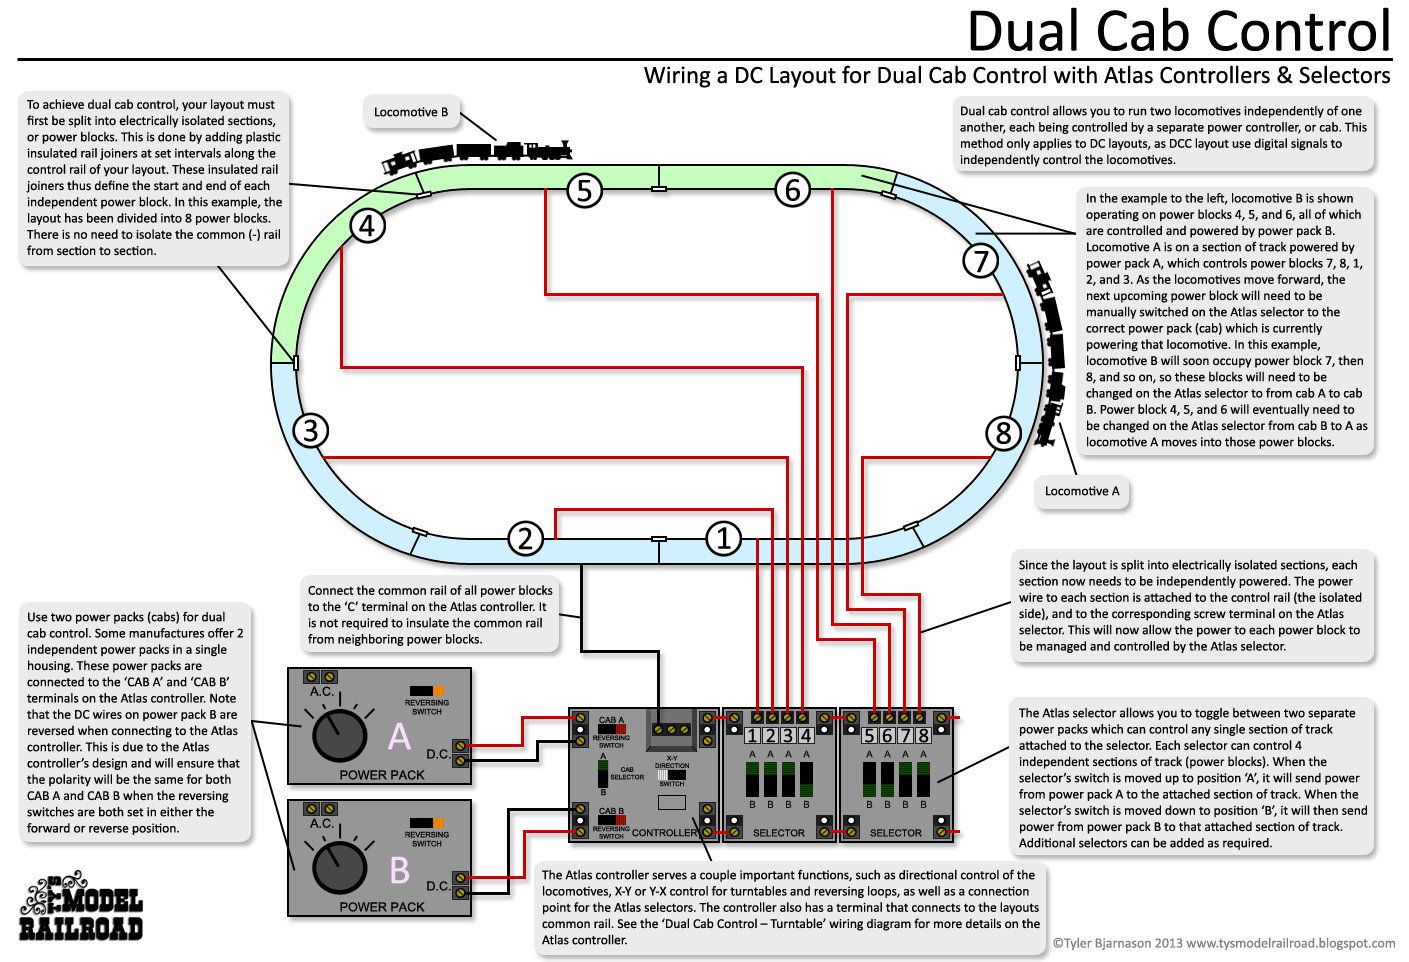 ty s model railroad wiring diagrams rh tysmodelrailroad blogspot com dcc model railway wiring diagrams Model Railroad Track Diagrams